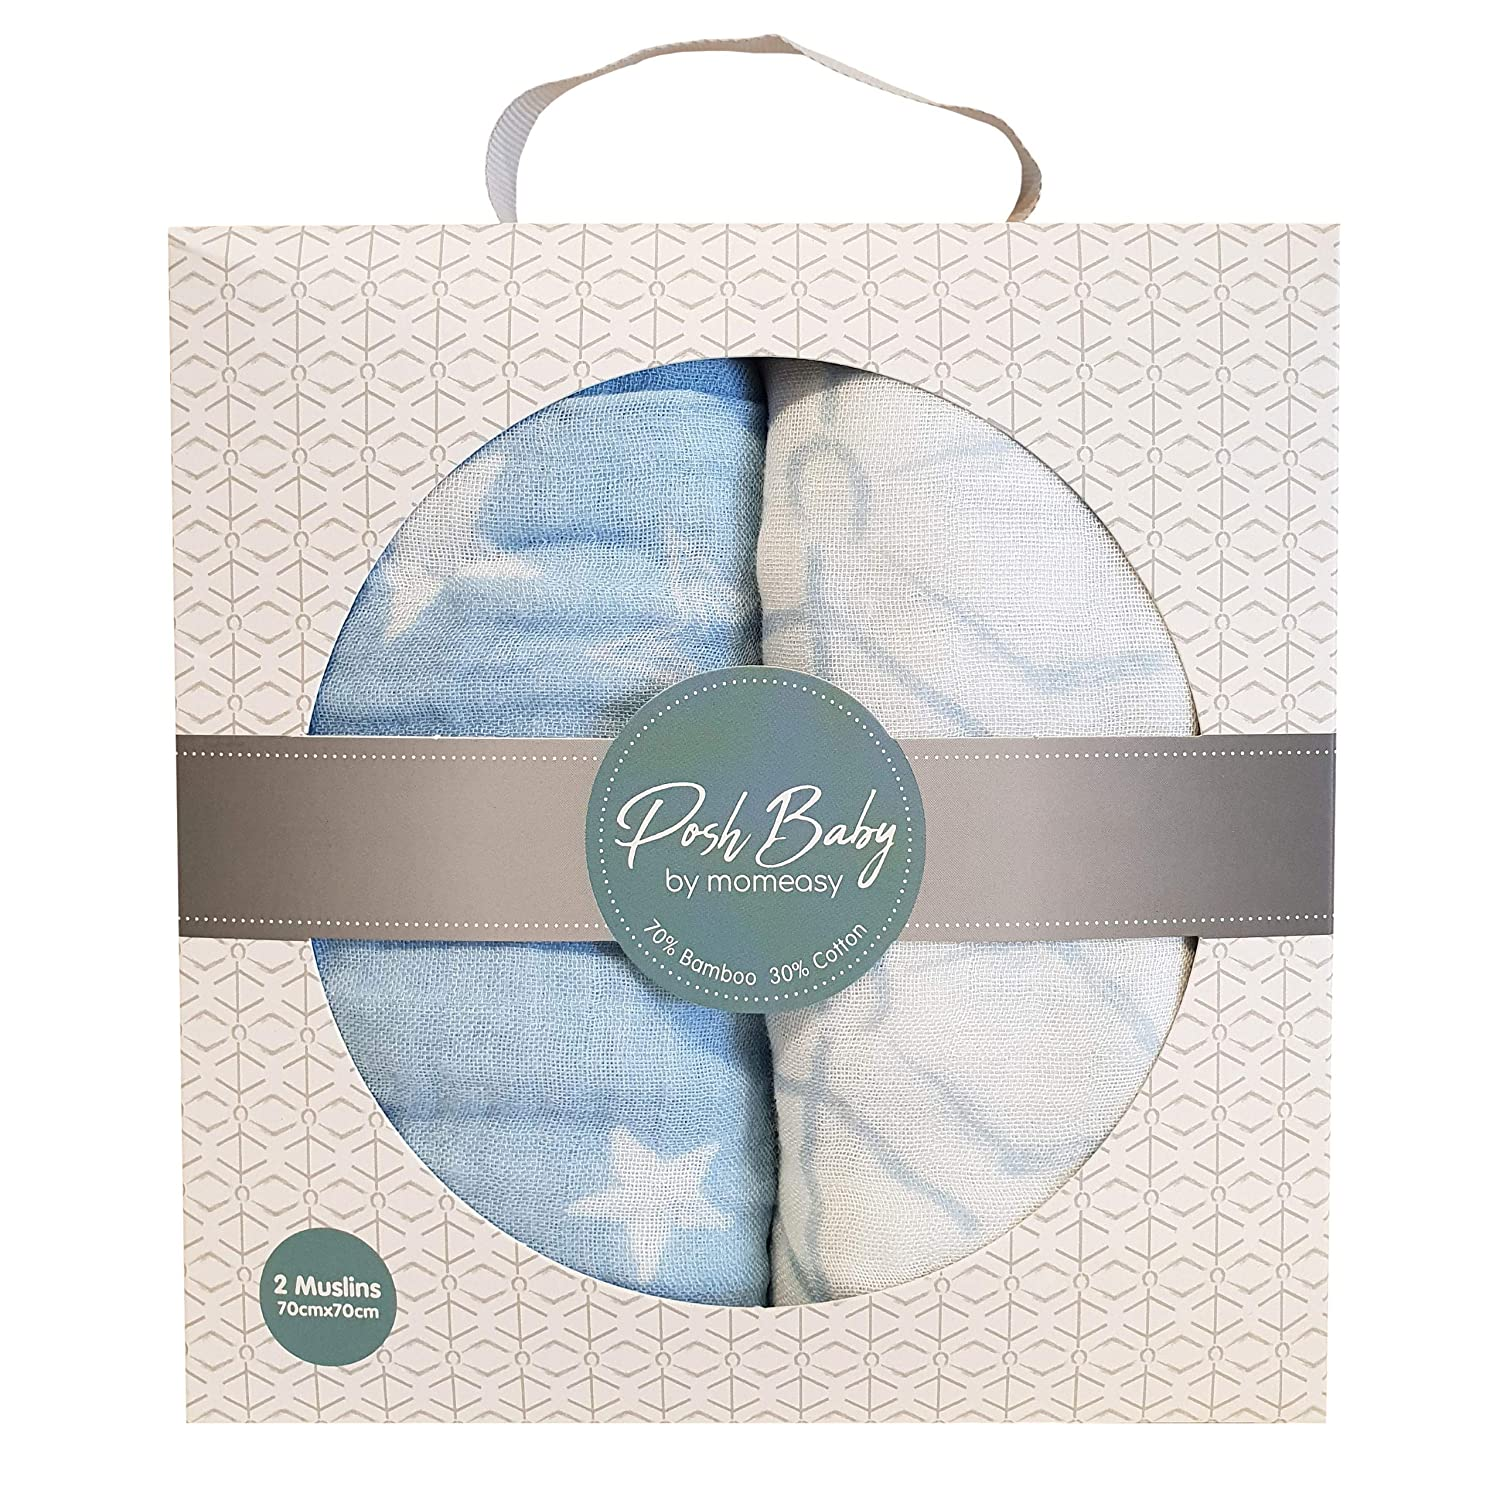 Stretchable Flowers Comfortable Silky Soft Pre-Washed Muslin Baby Swaddle Blanket Pure Cotton Breathable Warm Anti-Bacterial |Baby-Friendly Snug Easy-to-Wrap 43 43